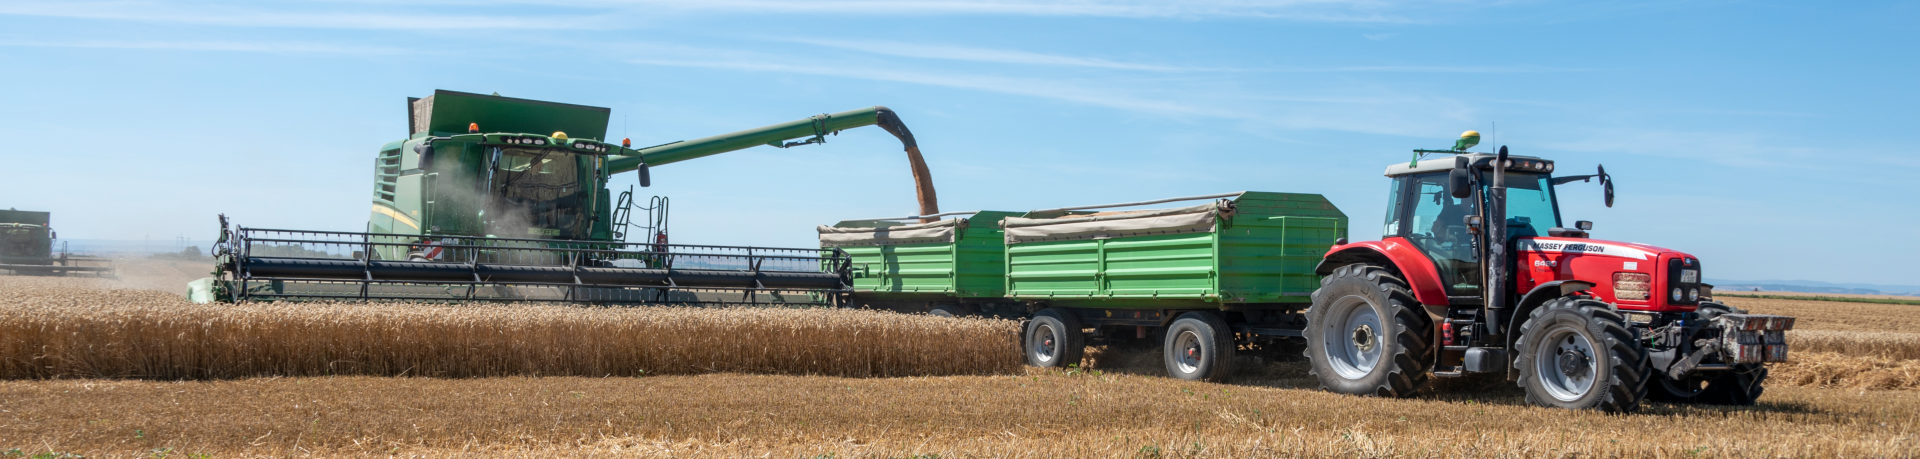 Combine harvester and tractor during the grain harvest